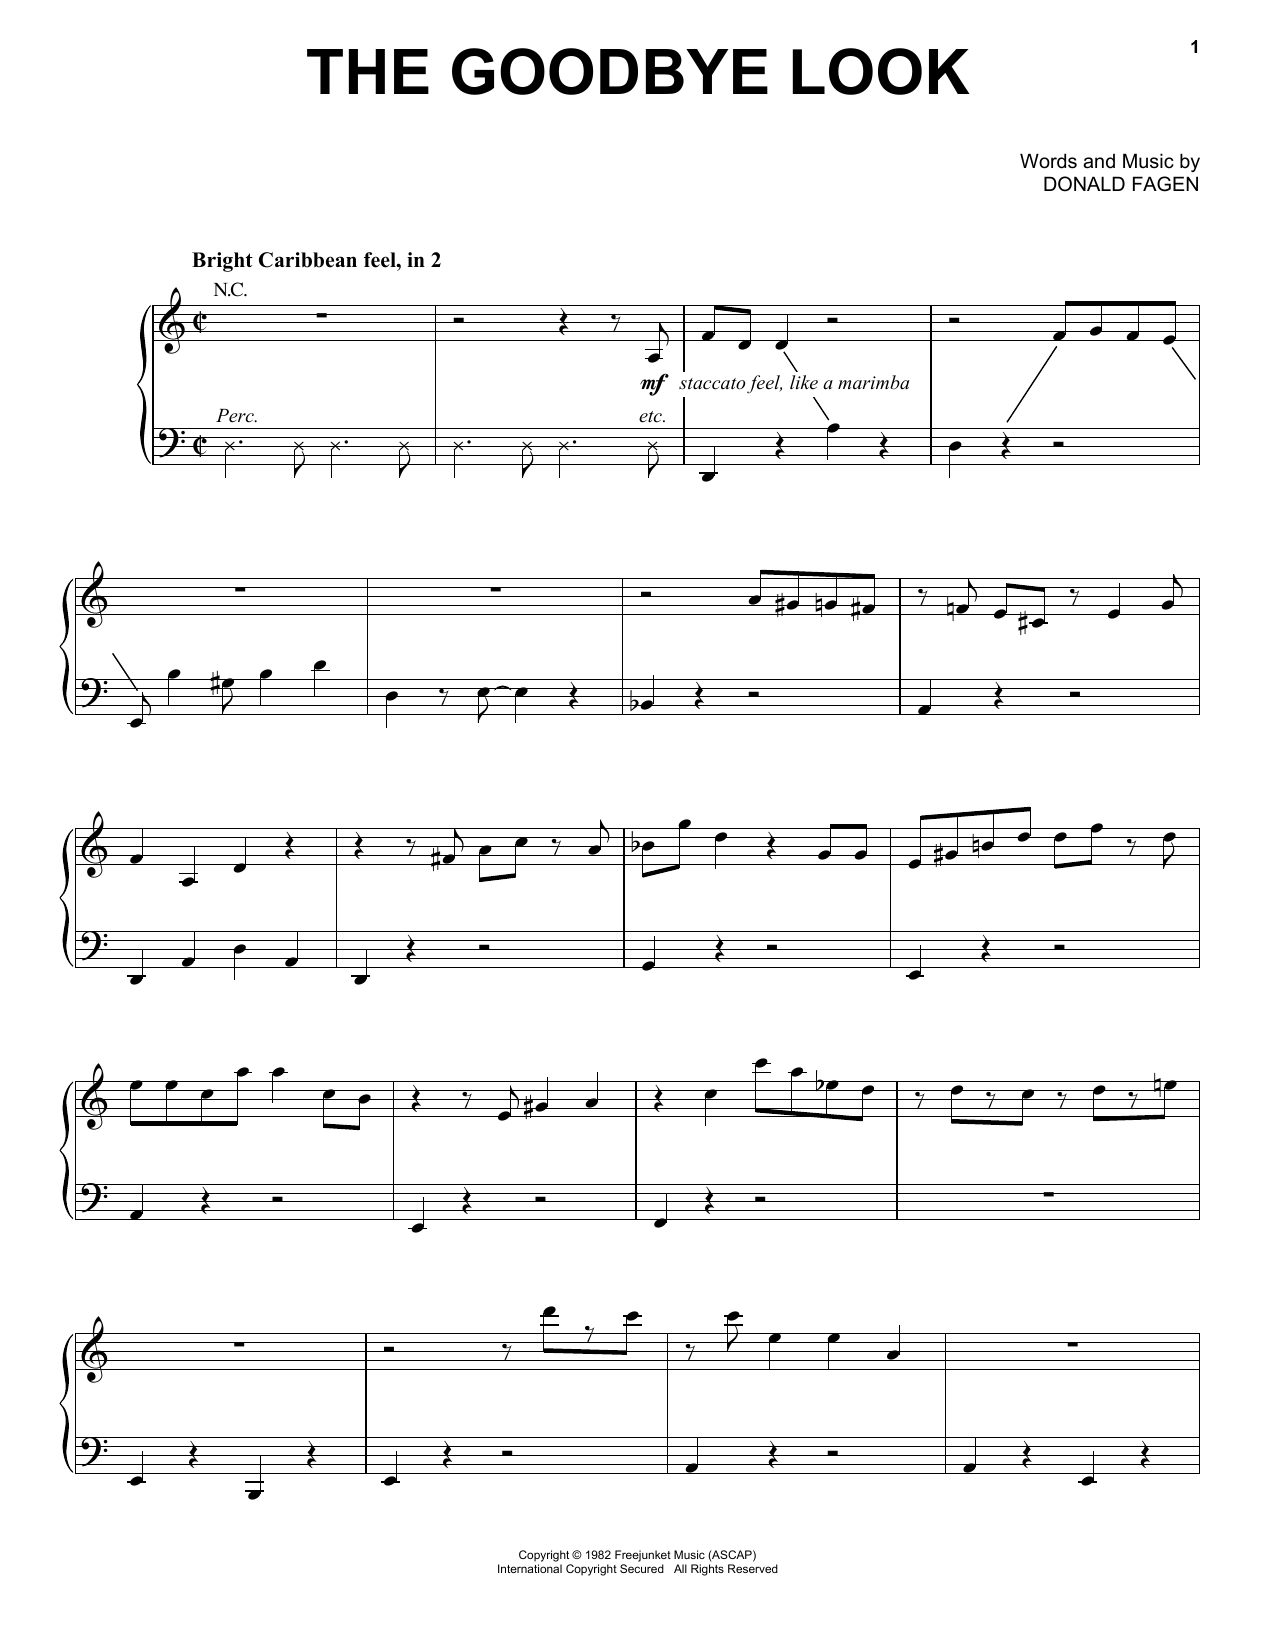 Donald Fagen The Goodbye Look sheet music notes and chords. Download Printable PDF.